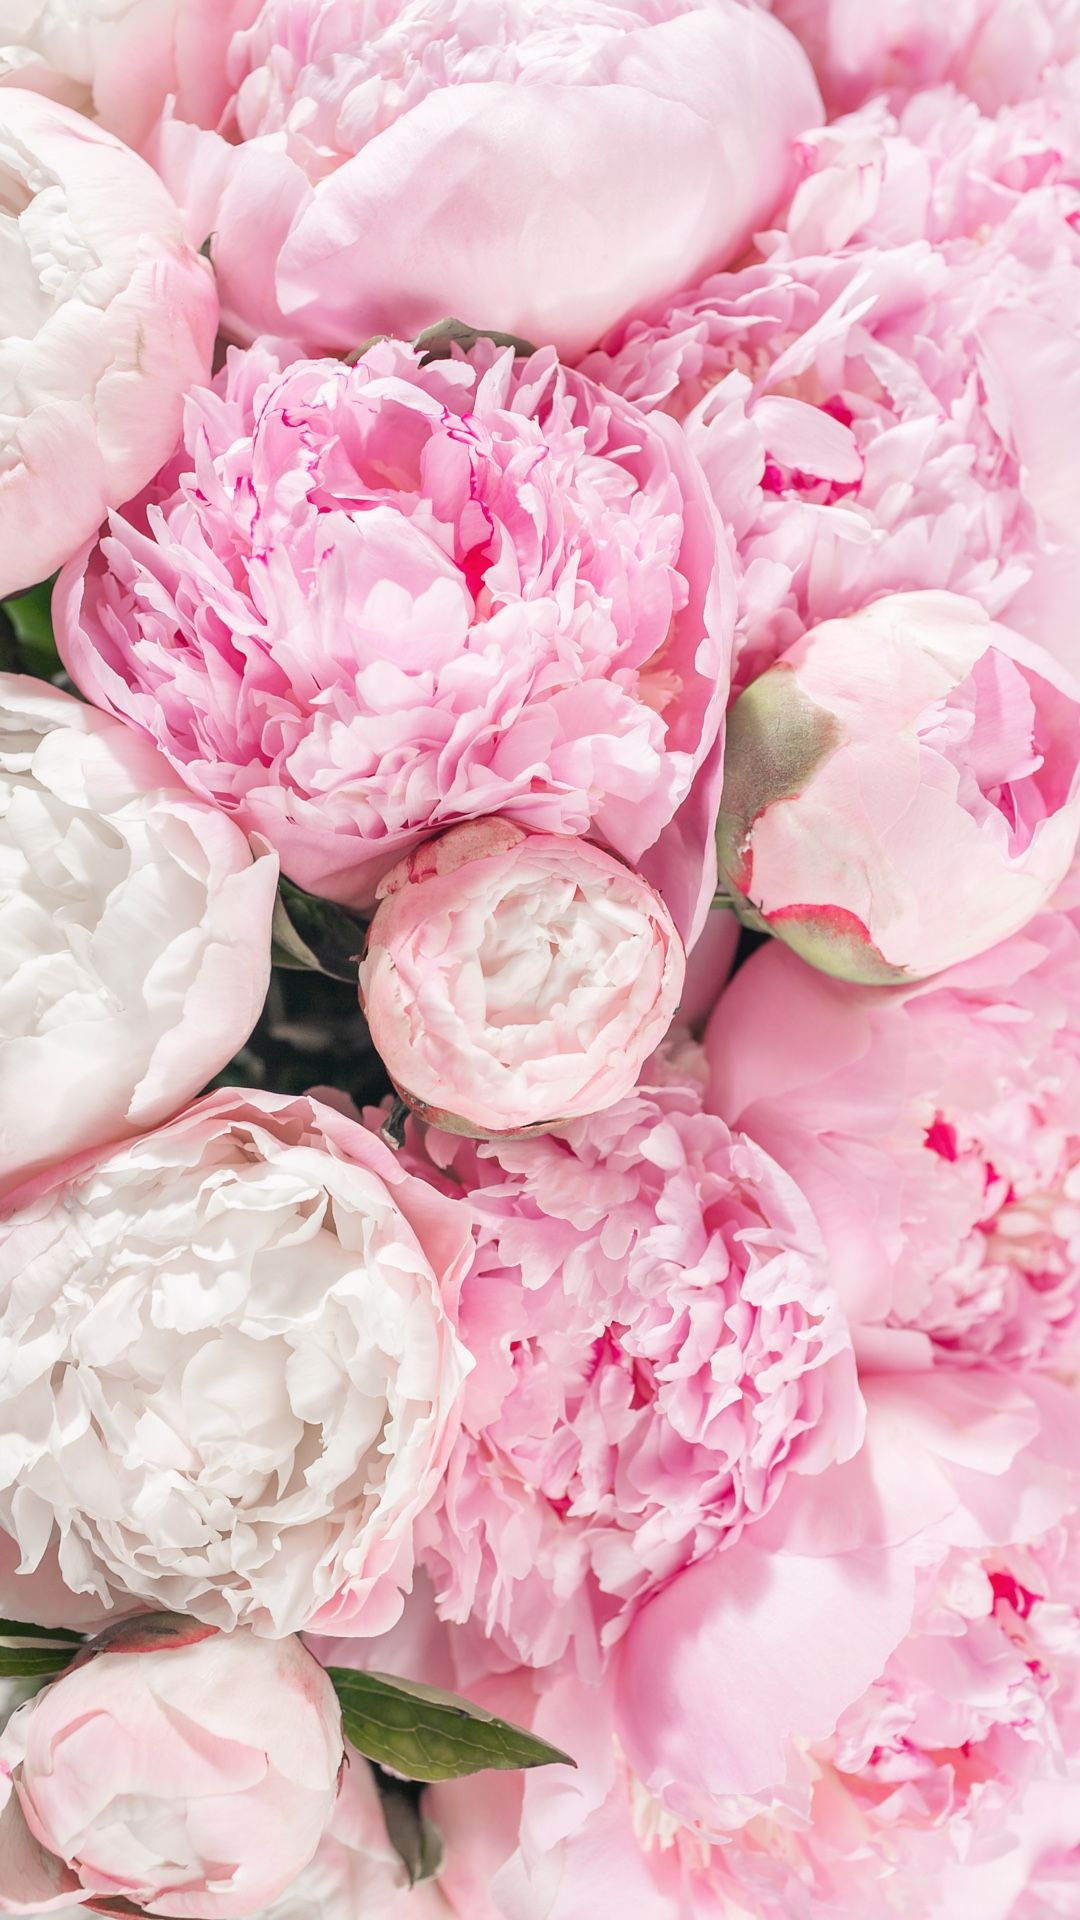 Peonies Wallpaper Pink Flowers Wallpaper Flower Iphone Wallpaper Peony Wallpaper